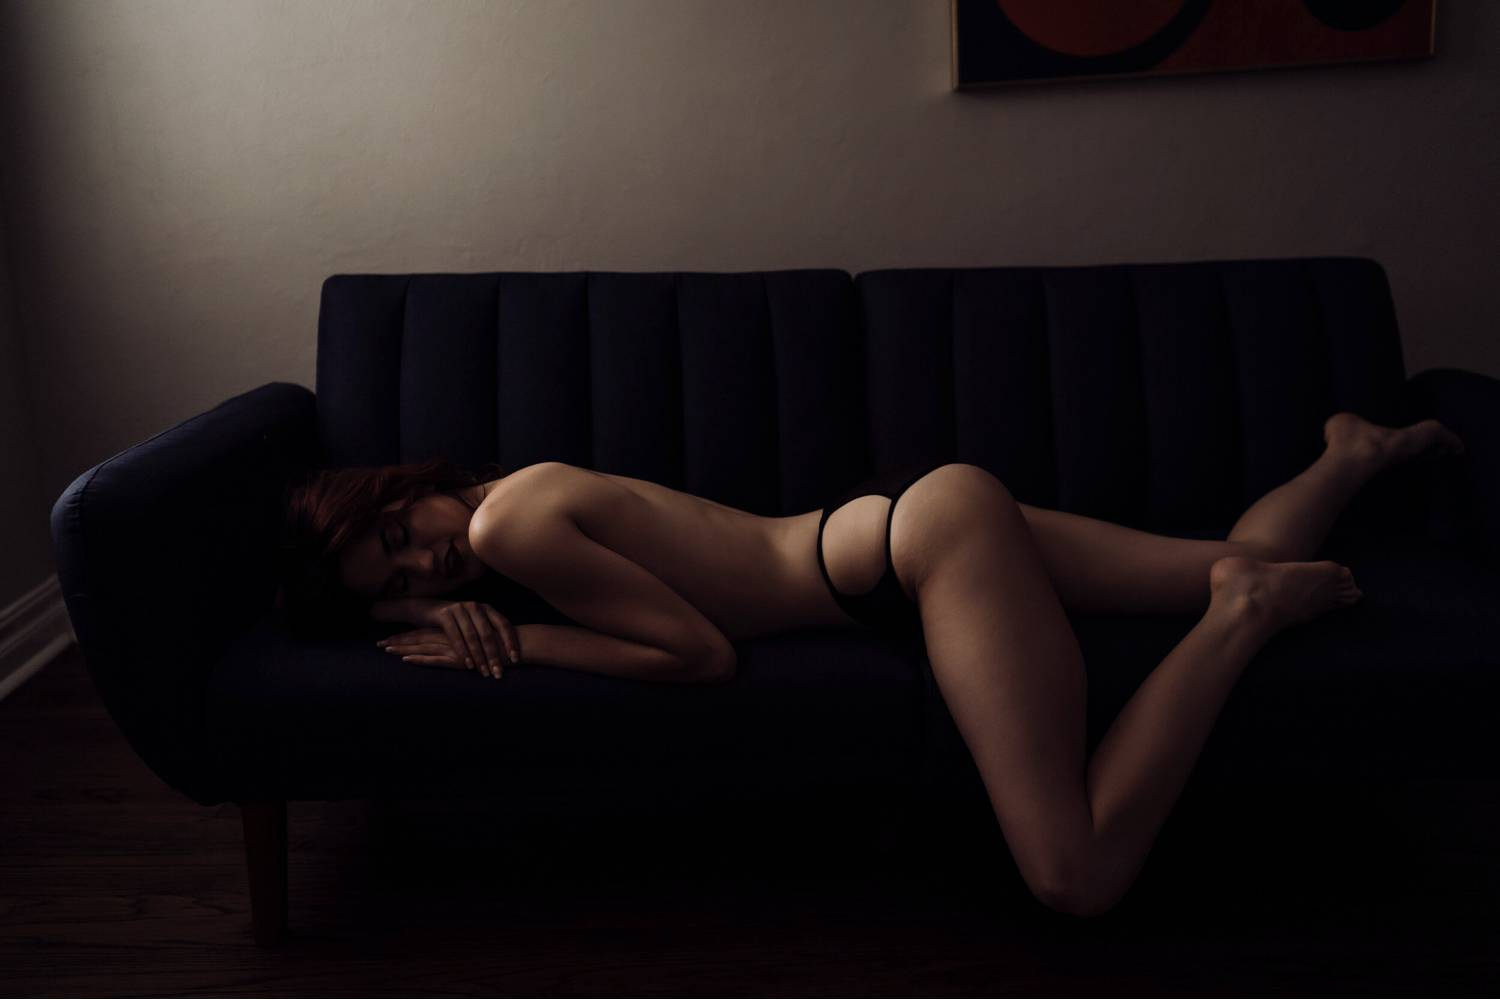 Photo: Intimate Lens Studio's portrait of a woman lying nearly naked on a sofa. The natural light spills across her back and hip as she reclines.